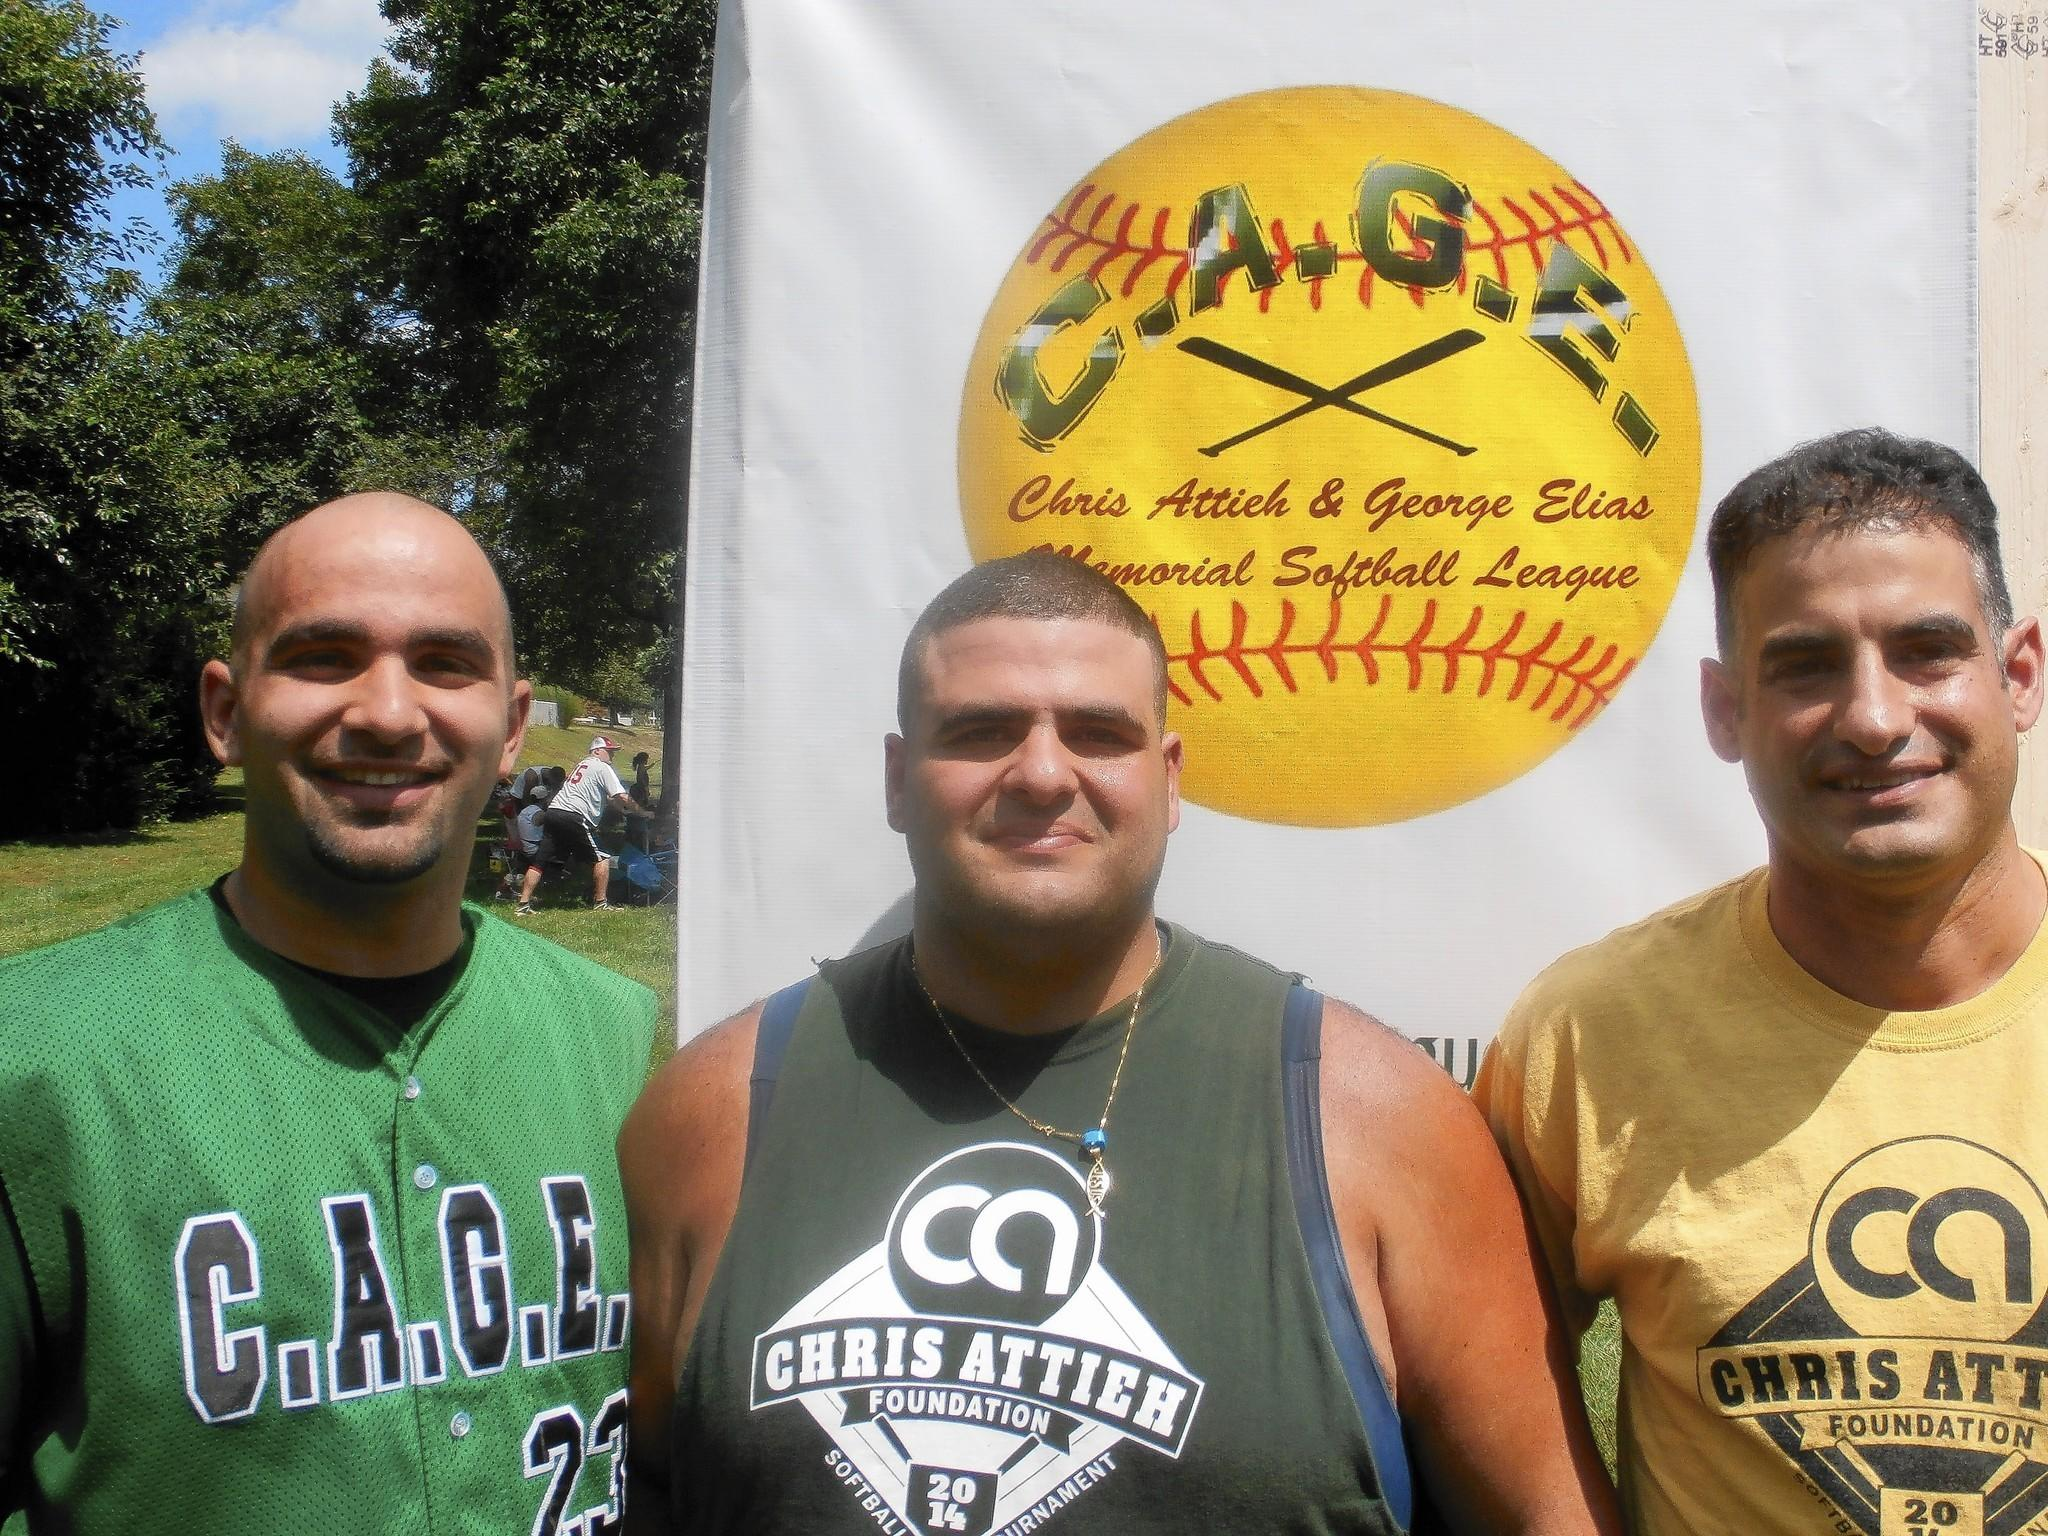 Gus Elias, Joe Attieh and Danny Attieh (from left) are among the organizers of the C.A.G.E. slo-pitch softball league, which honors the memory of their late brothers, George Elias and Chris Attieh.